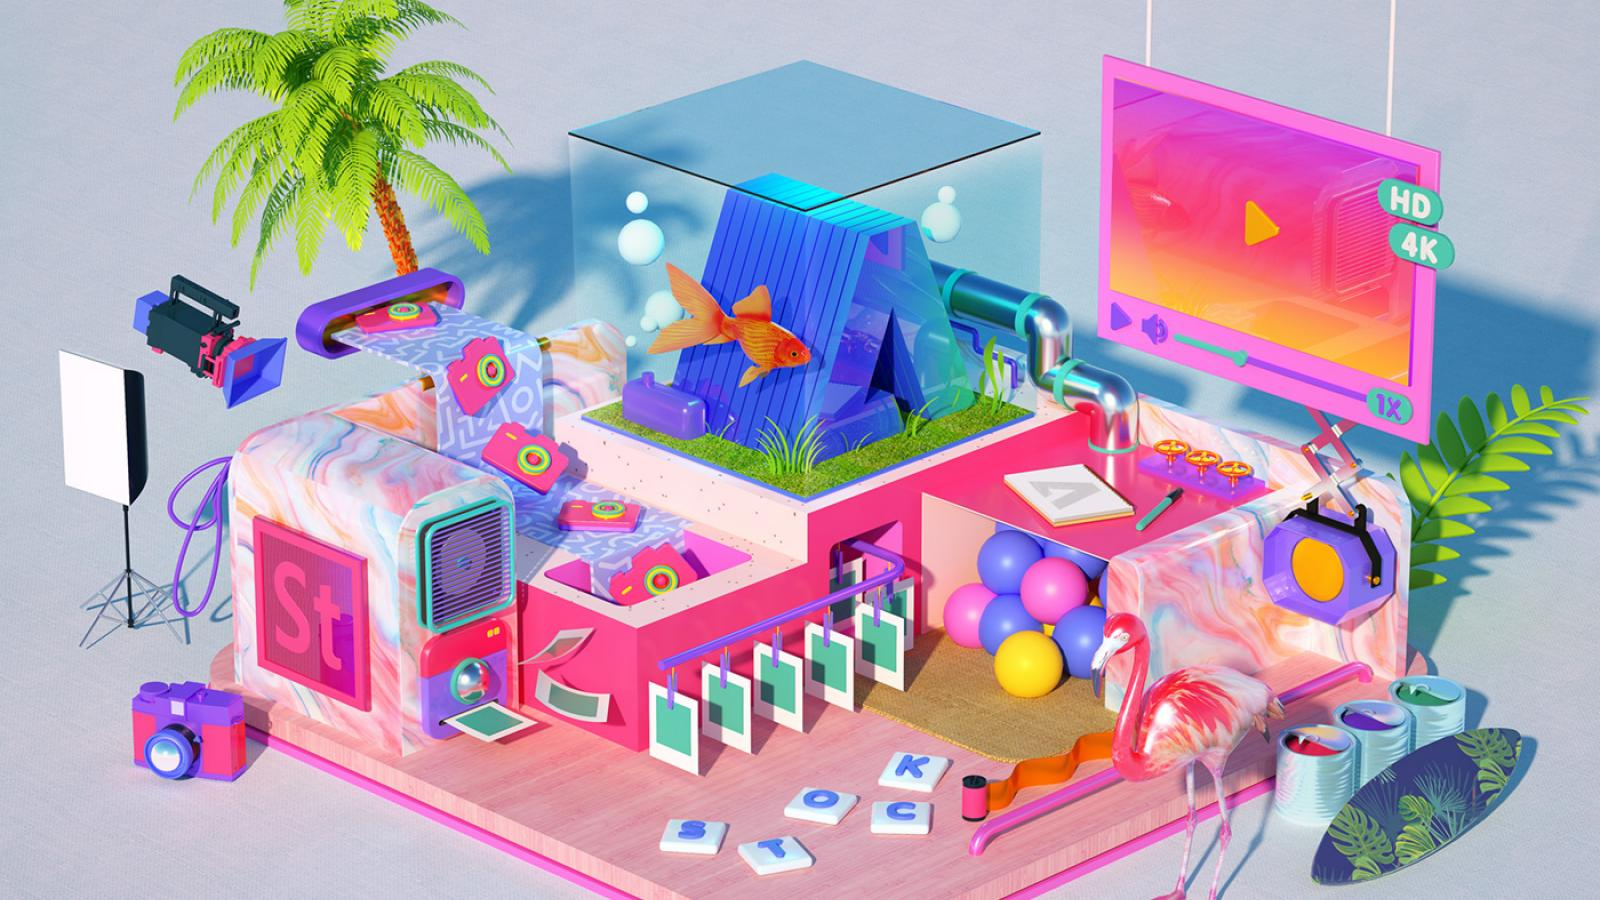 D Abduzeedo - 3d rendered experimental artworks